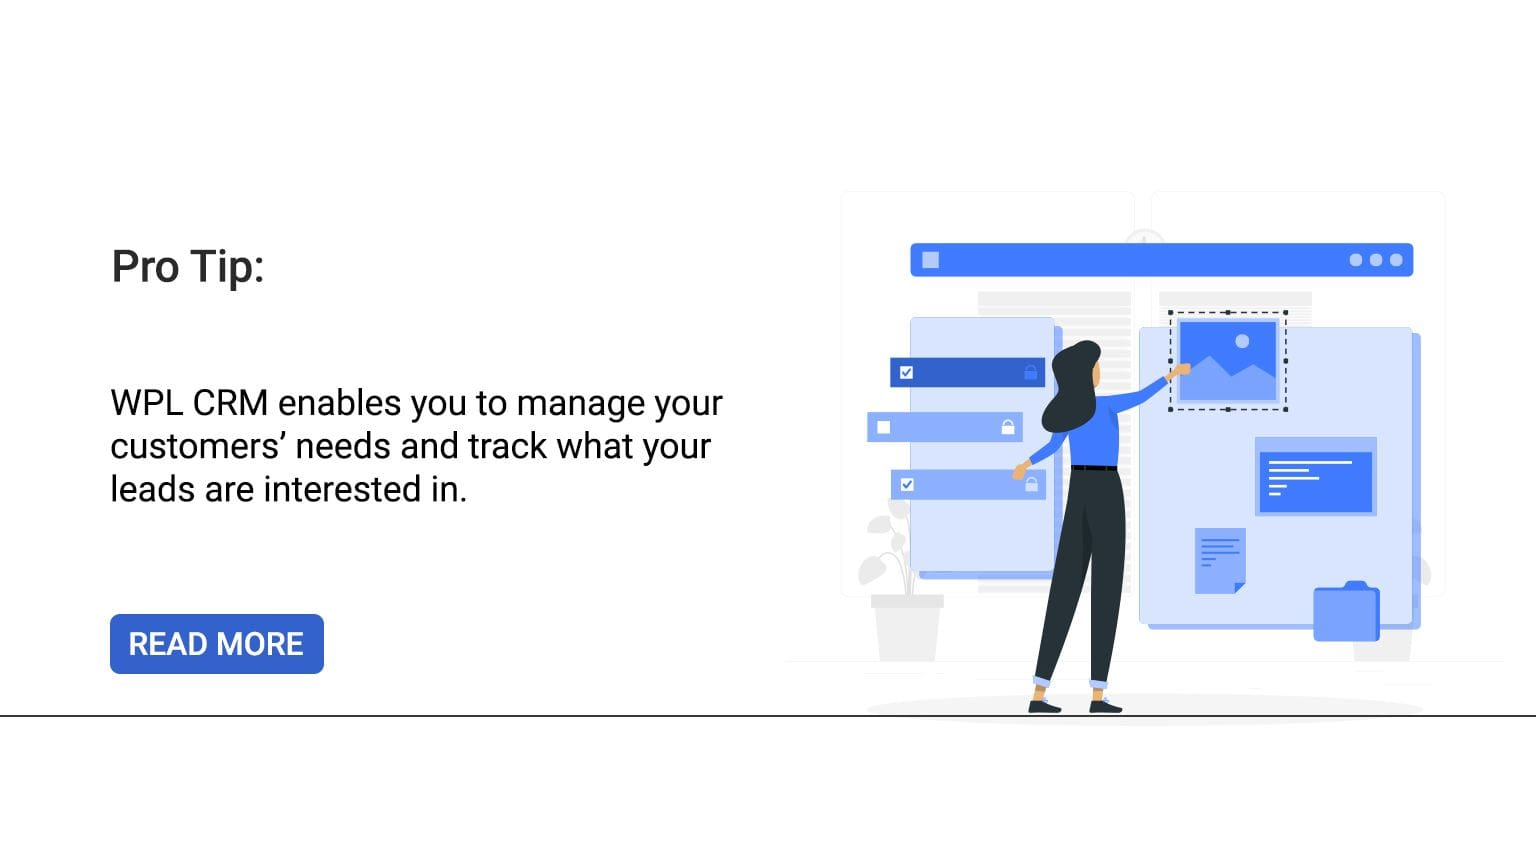 Pro-tip: WPL CRM enables you to manage your customers' needs and track what your leads are interested in.